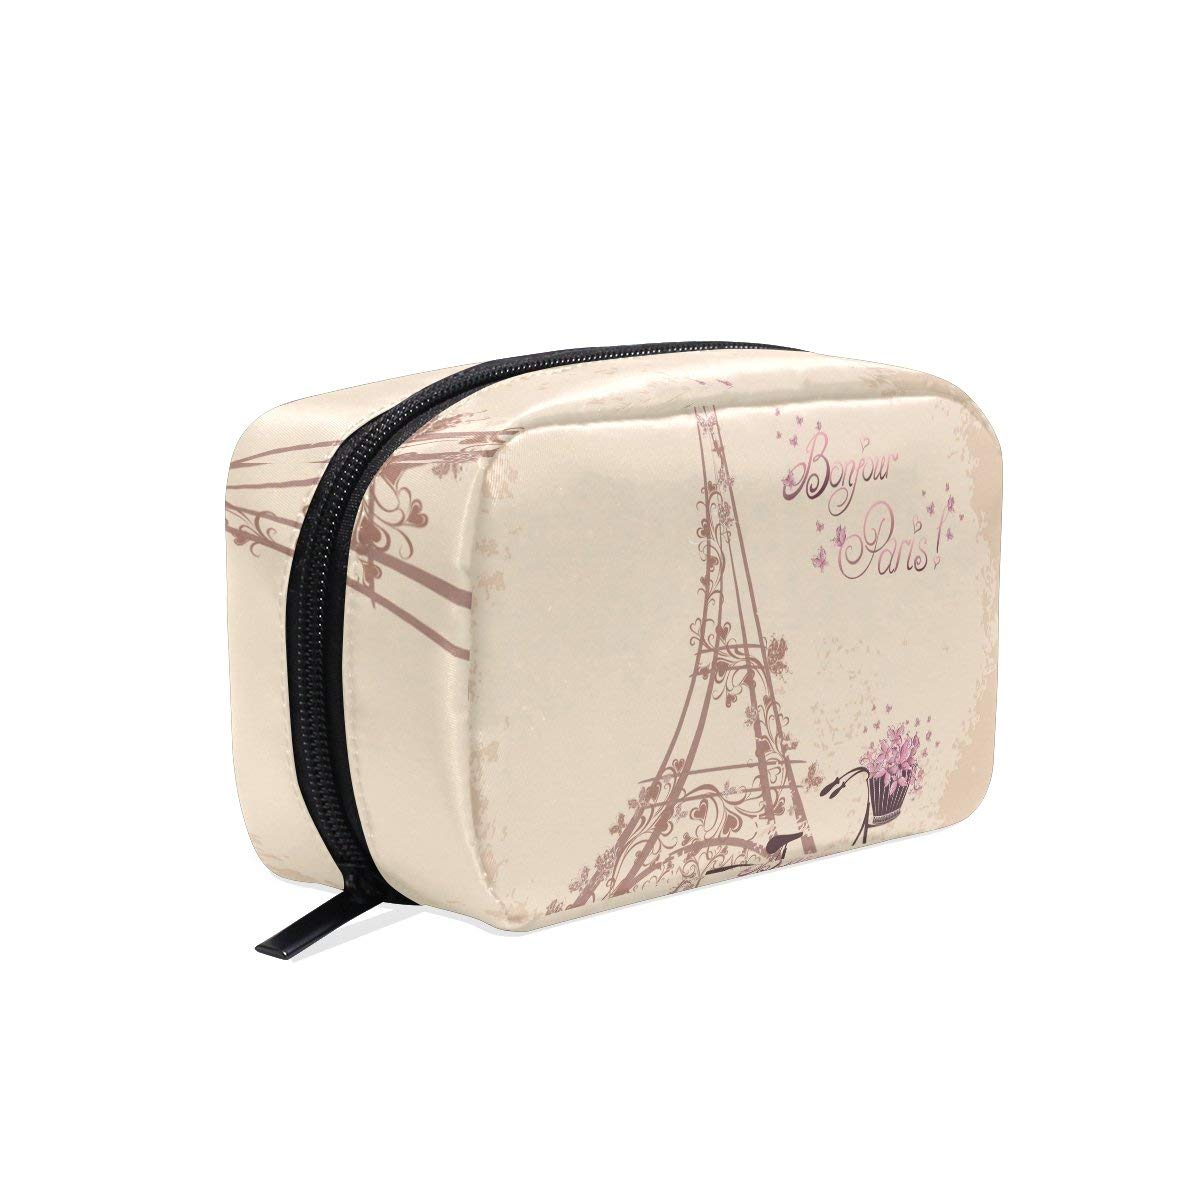 MAPOLO Bonjour Paris Tower Eiffel And Bicycle Romantic Handy Cosmetic Pouch Clutch Makeup Bag Organizer Travel Bag